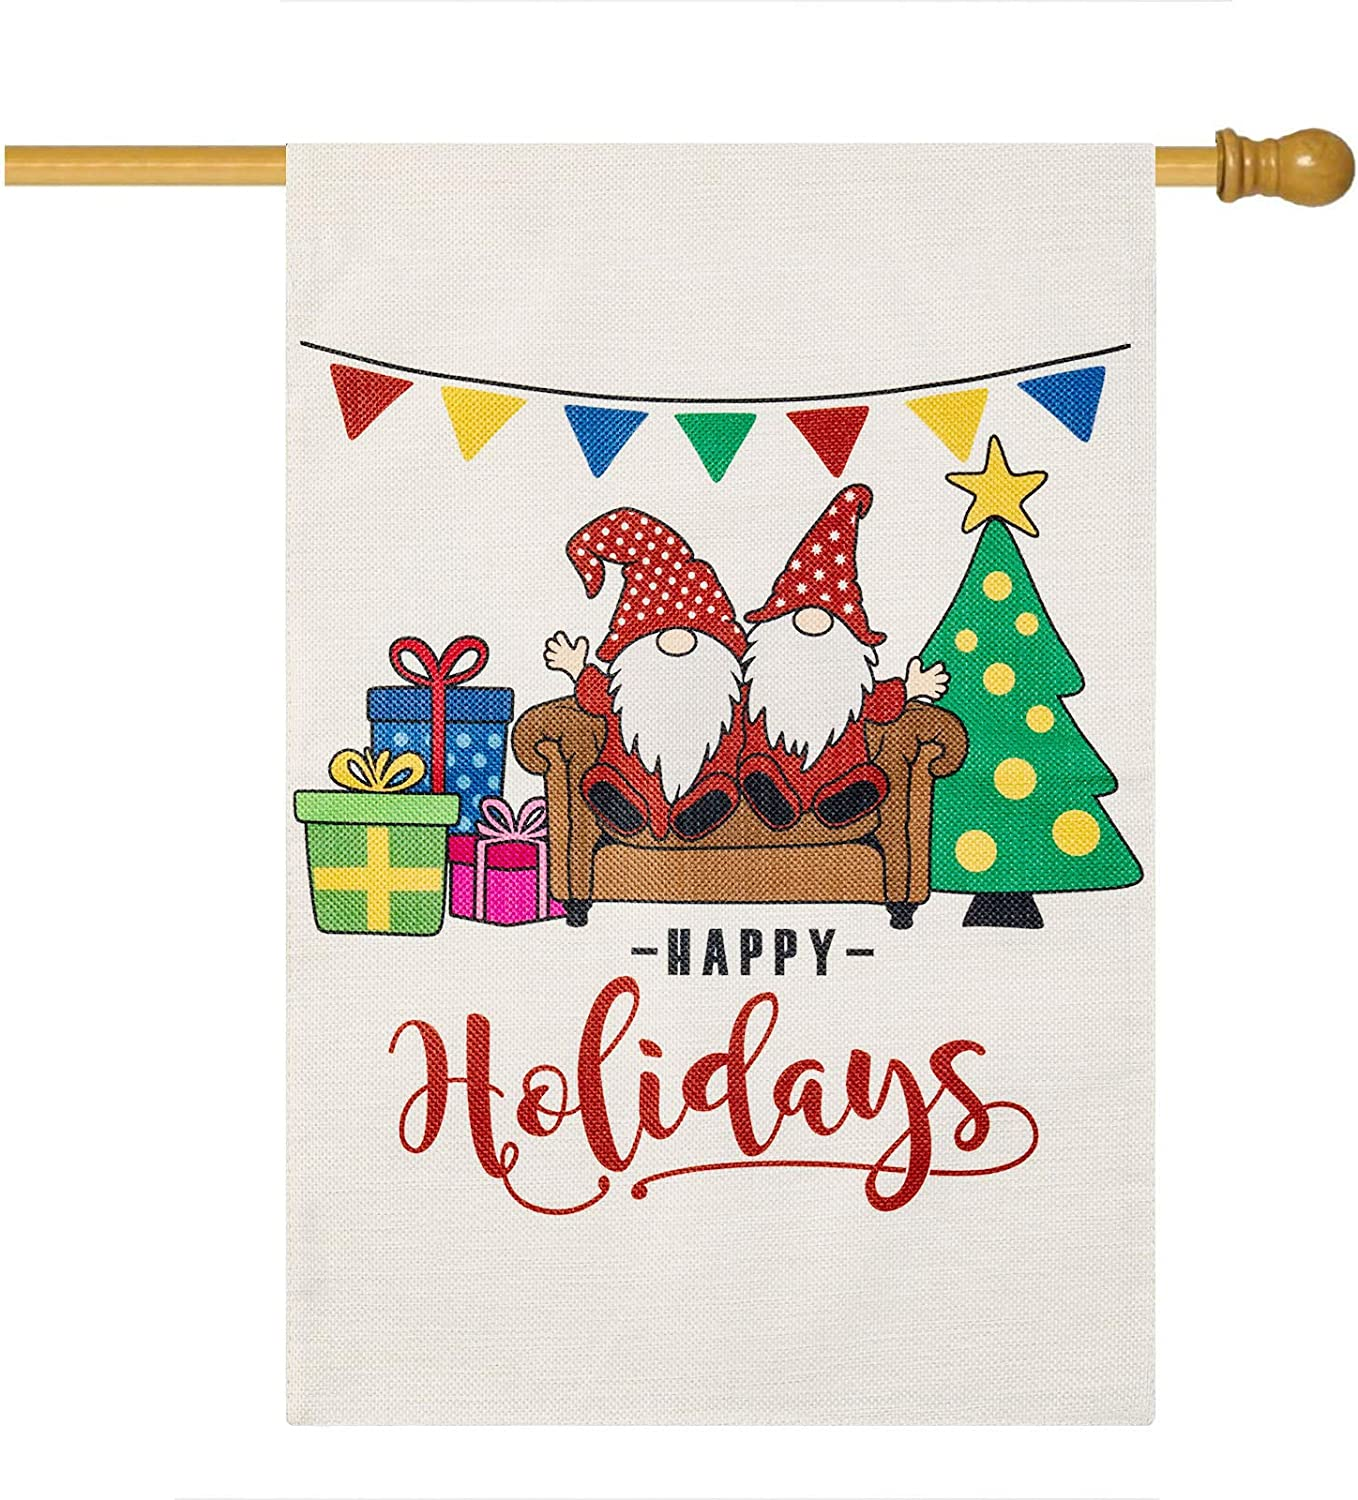 LARMOY Christmas Happy Holidays Gnome Garden House Flag 20 x 48 Inch Double Sided, Small Winter Burlap Yard Flags for Xmas Outdoor Decoration